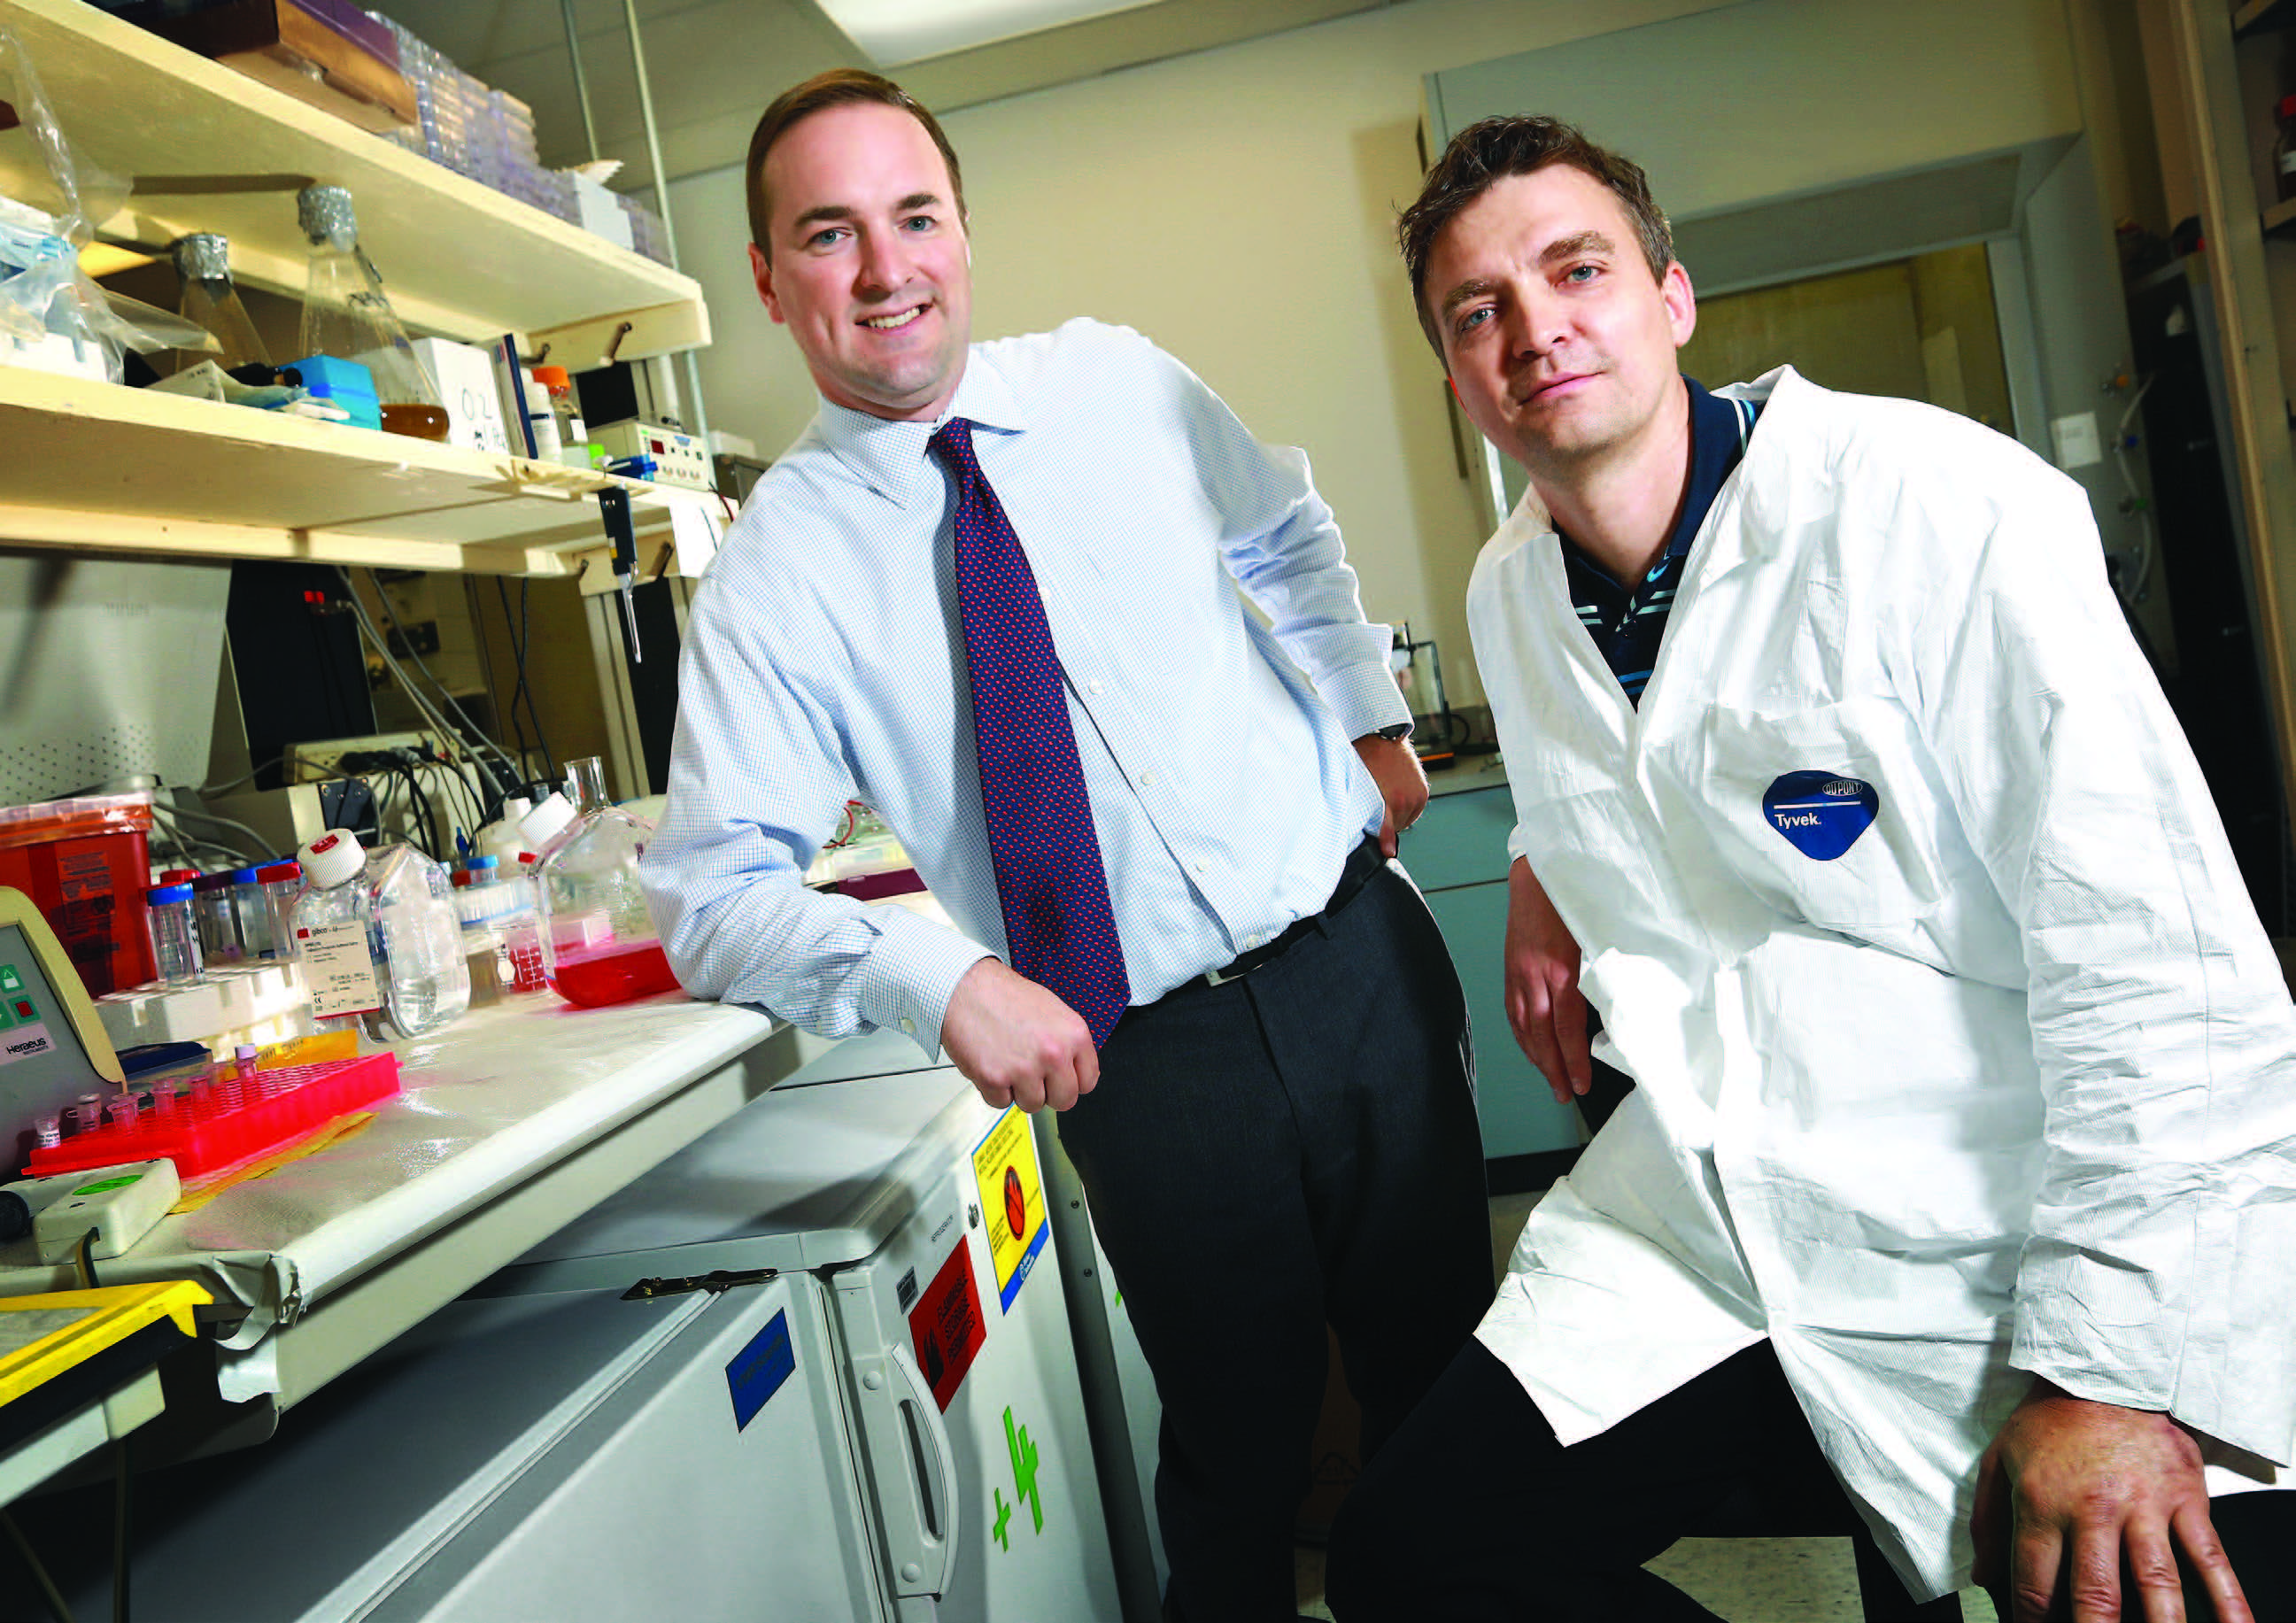 John Robert Coleman, PhD '08 (left) and Steffen Mueller, PhD '02 co-founded Codagenix Inc. with Wimmer.